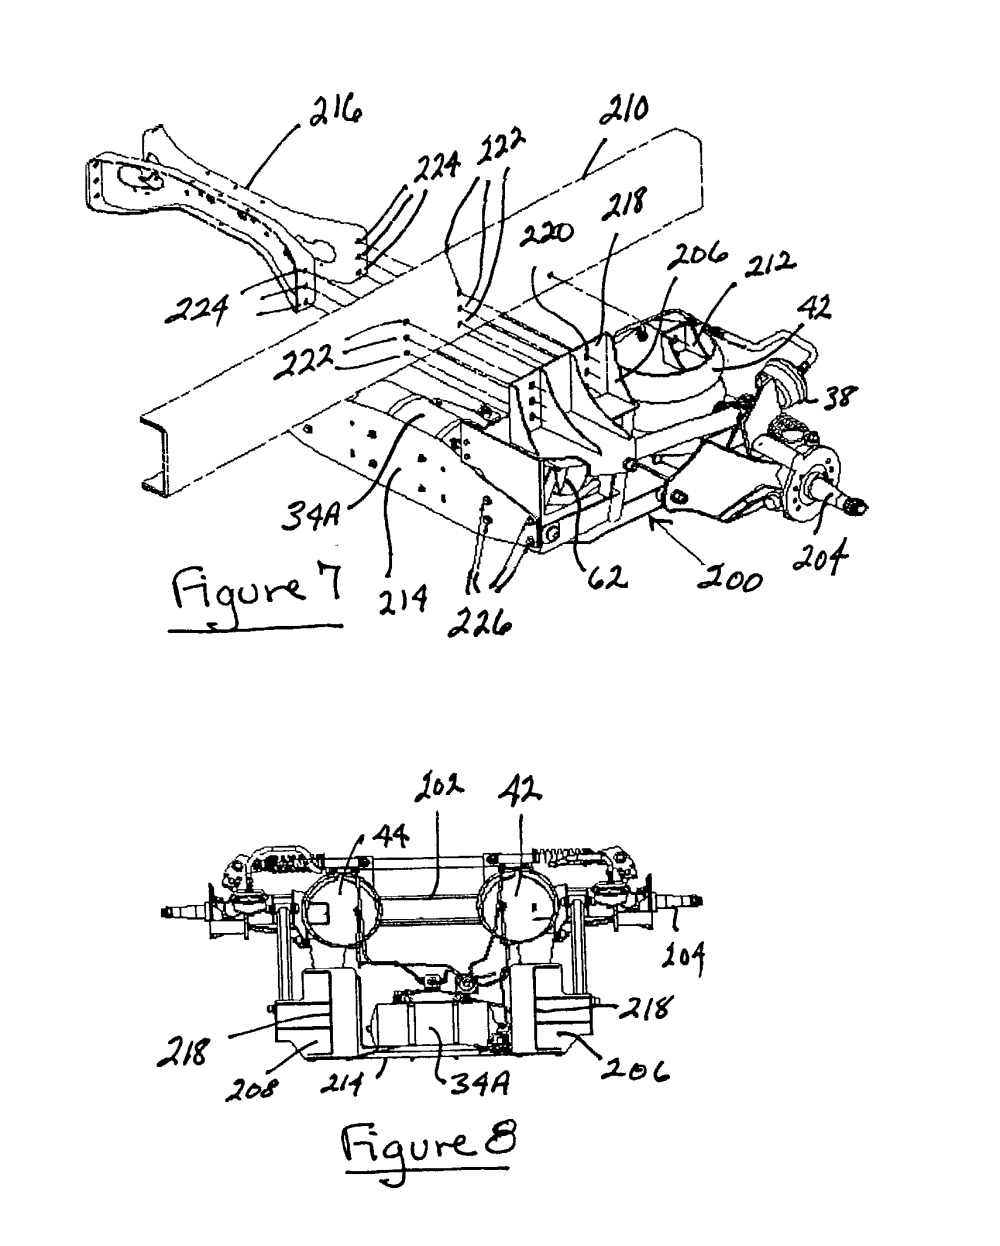 medium resolution of us20030151222a1 20030814 d00005 patent us20030151222 lift axle control and module google patents lift axle wiring diagram